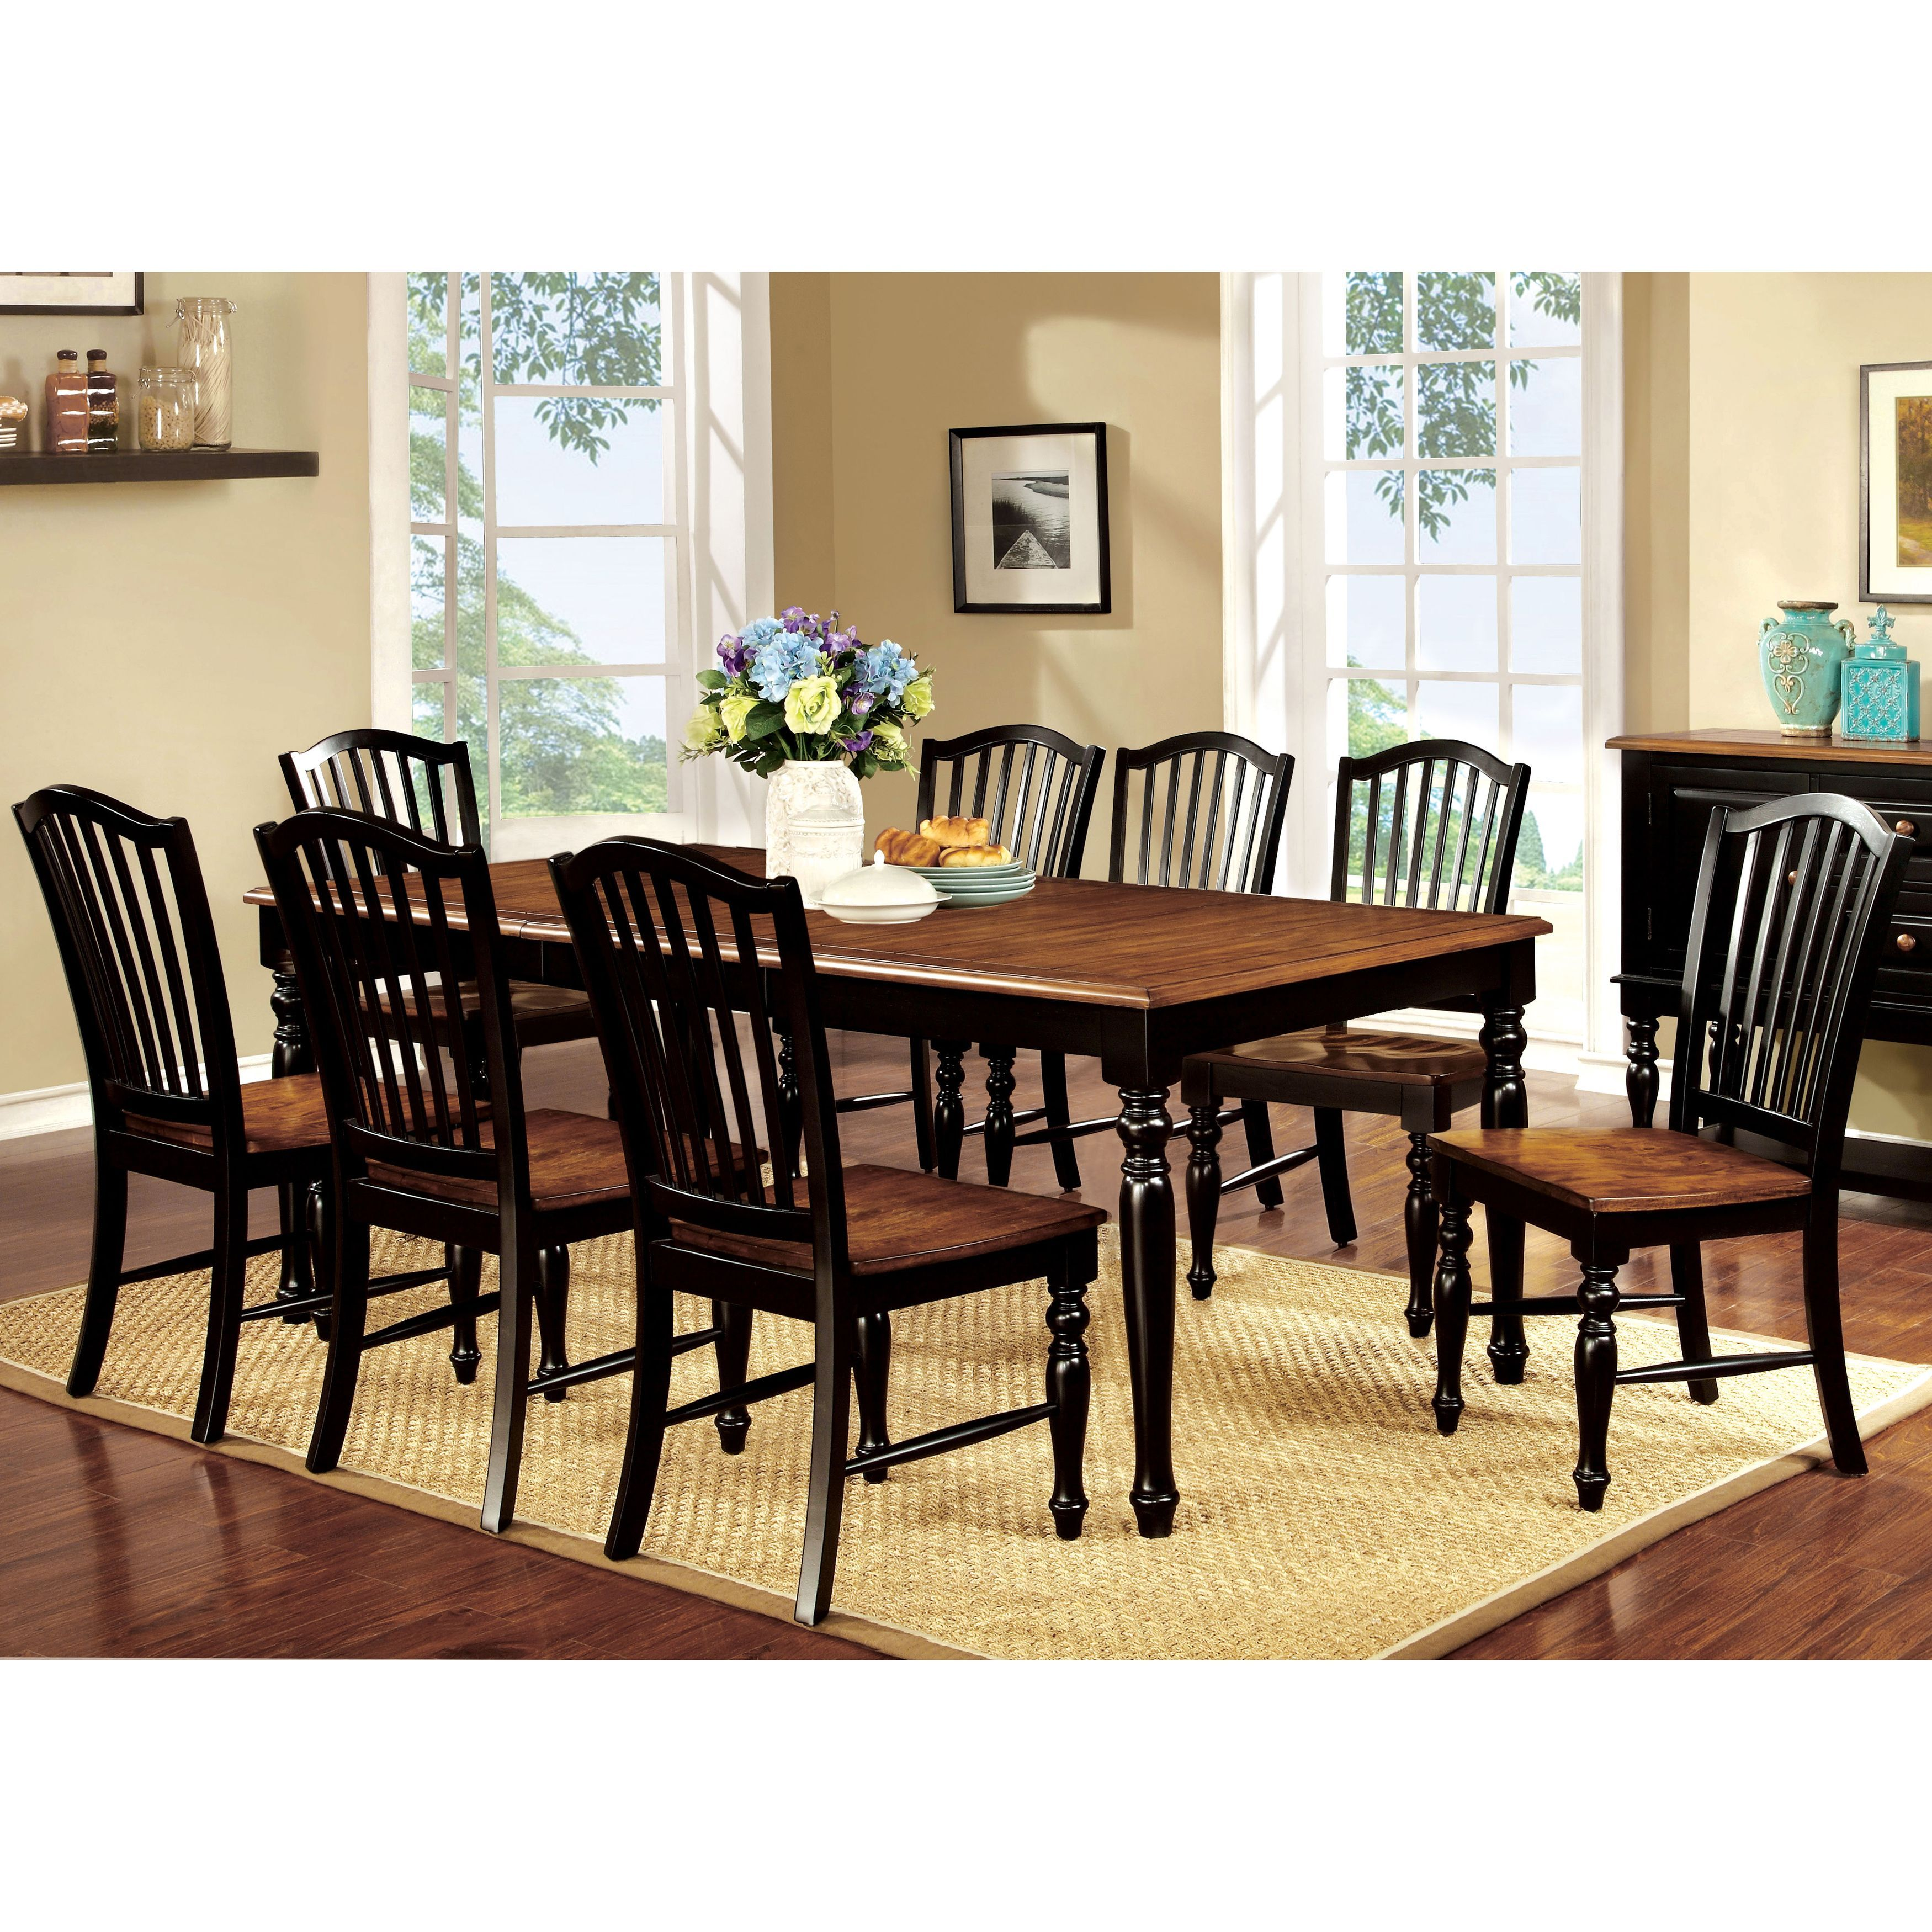 Furniture Of America Levole 2-Tone 9-Piece Country Style